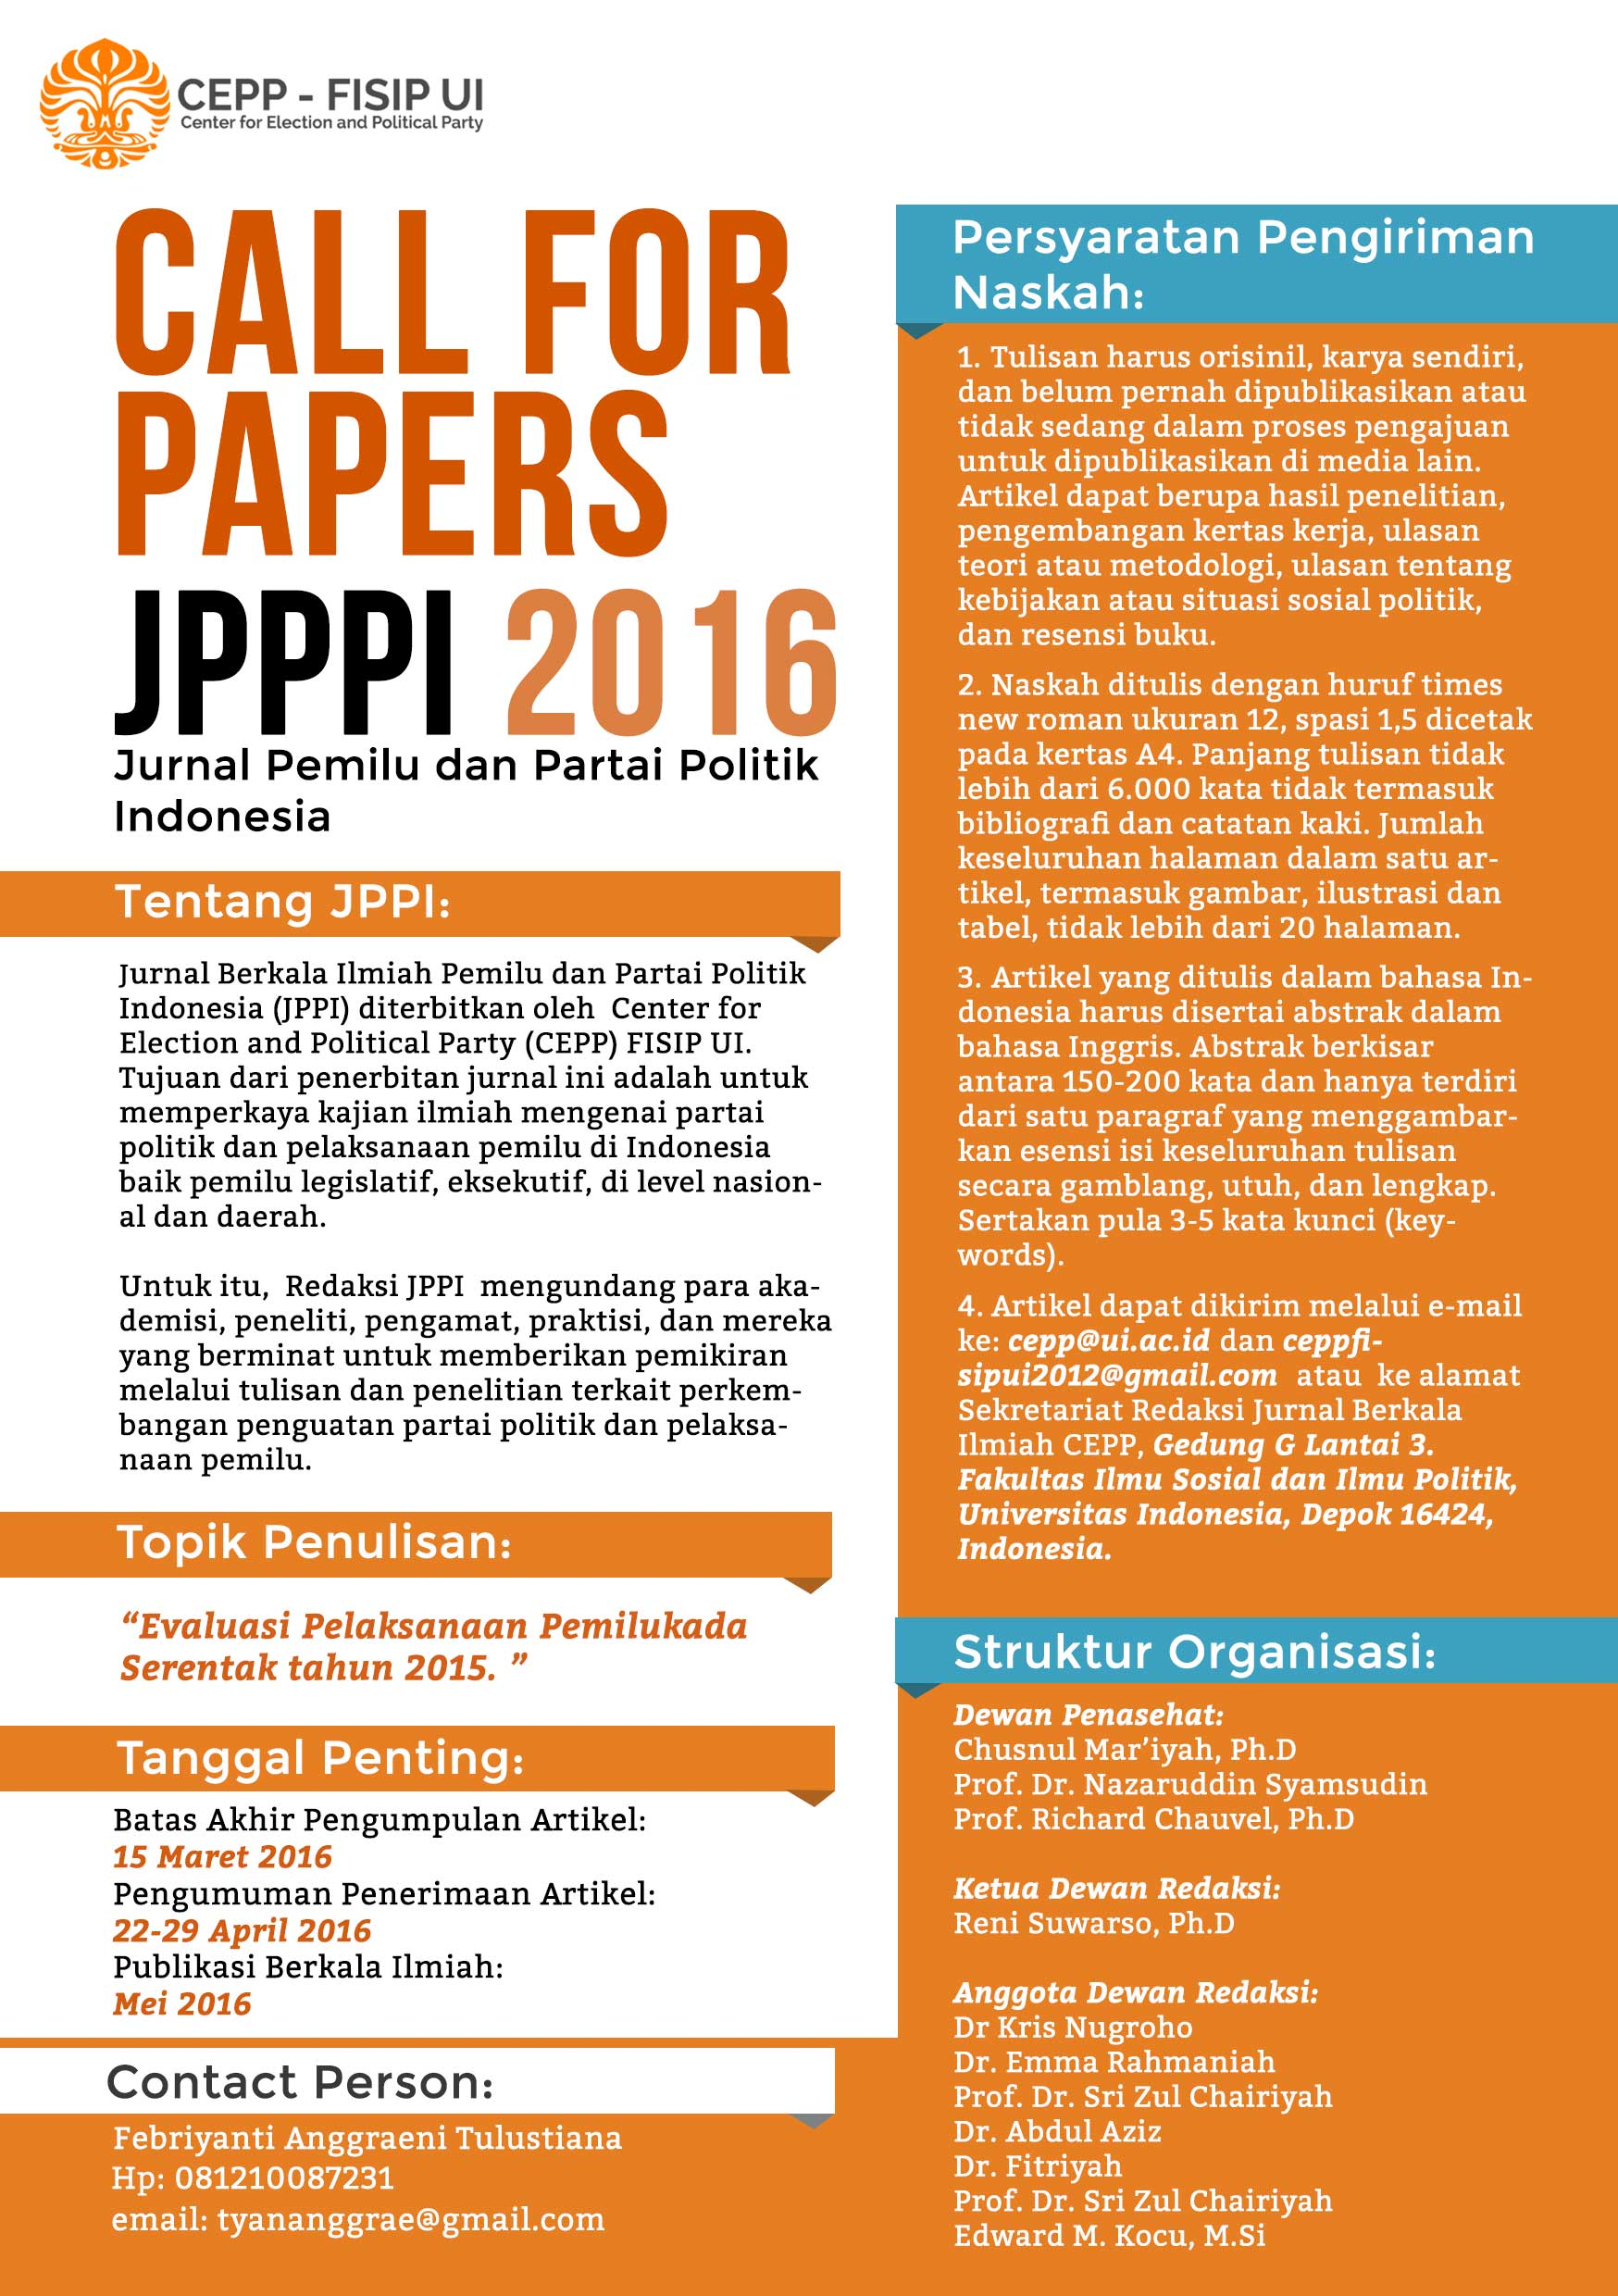 Call for Papers JPPPI